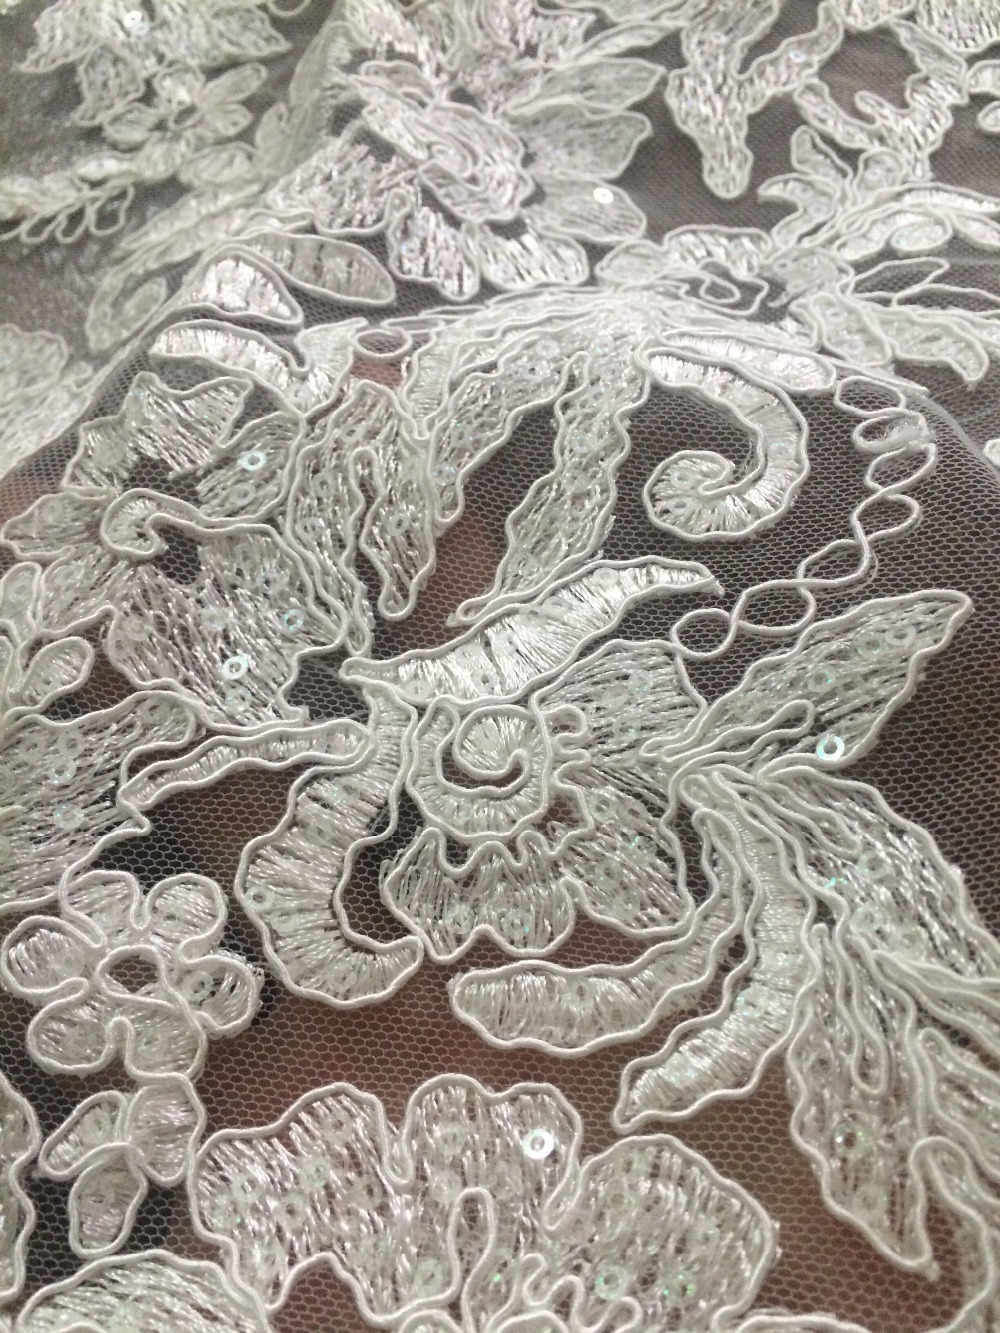 Fashion embroidered In Switzerland New Arrival LJY 6910 African Cord Net Lace Fabric with sequins for wedding-in Lace from Home & Garden    3